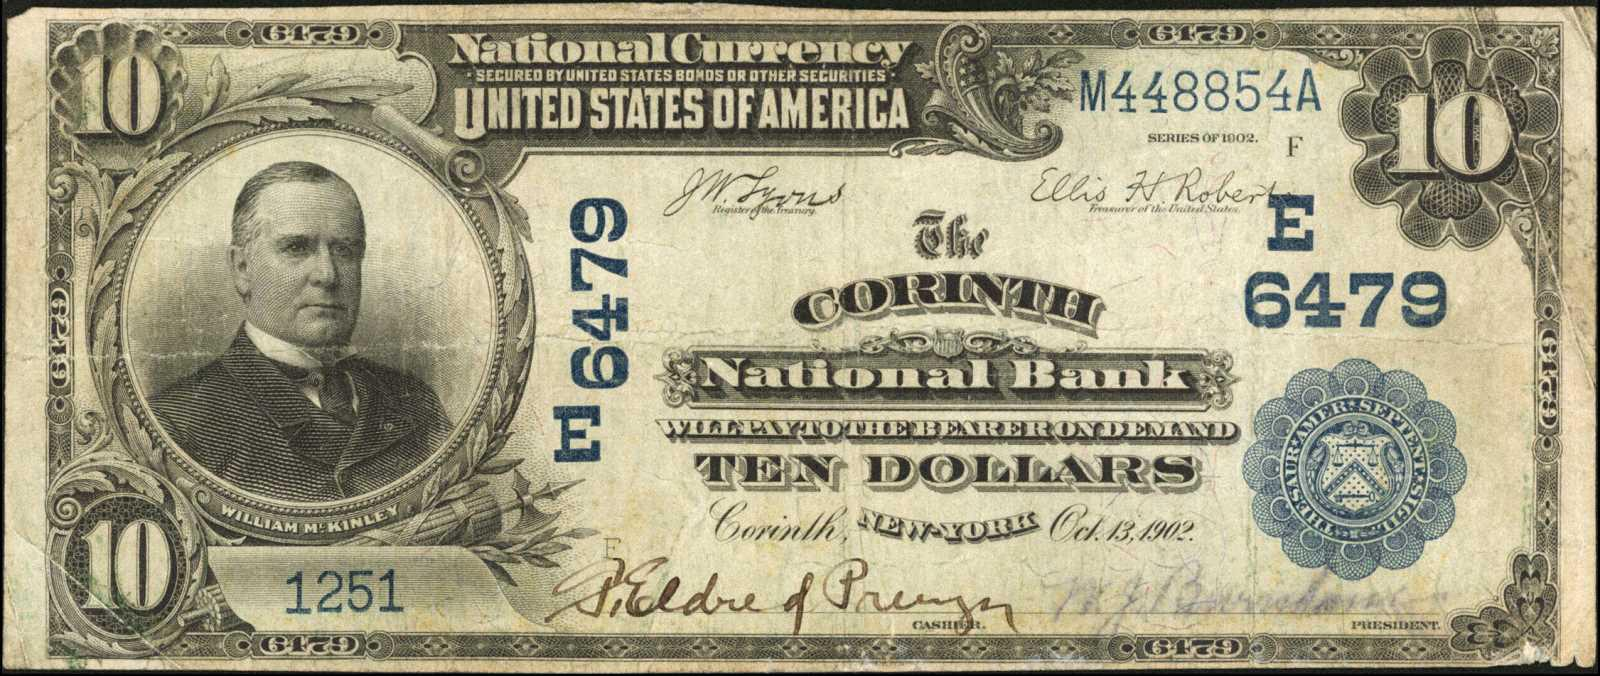 Paper Money Buyers | Old Paper Money | Paper Money Values